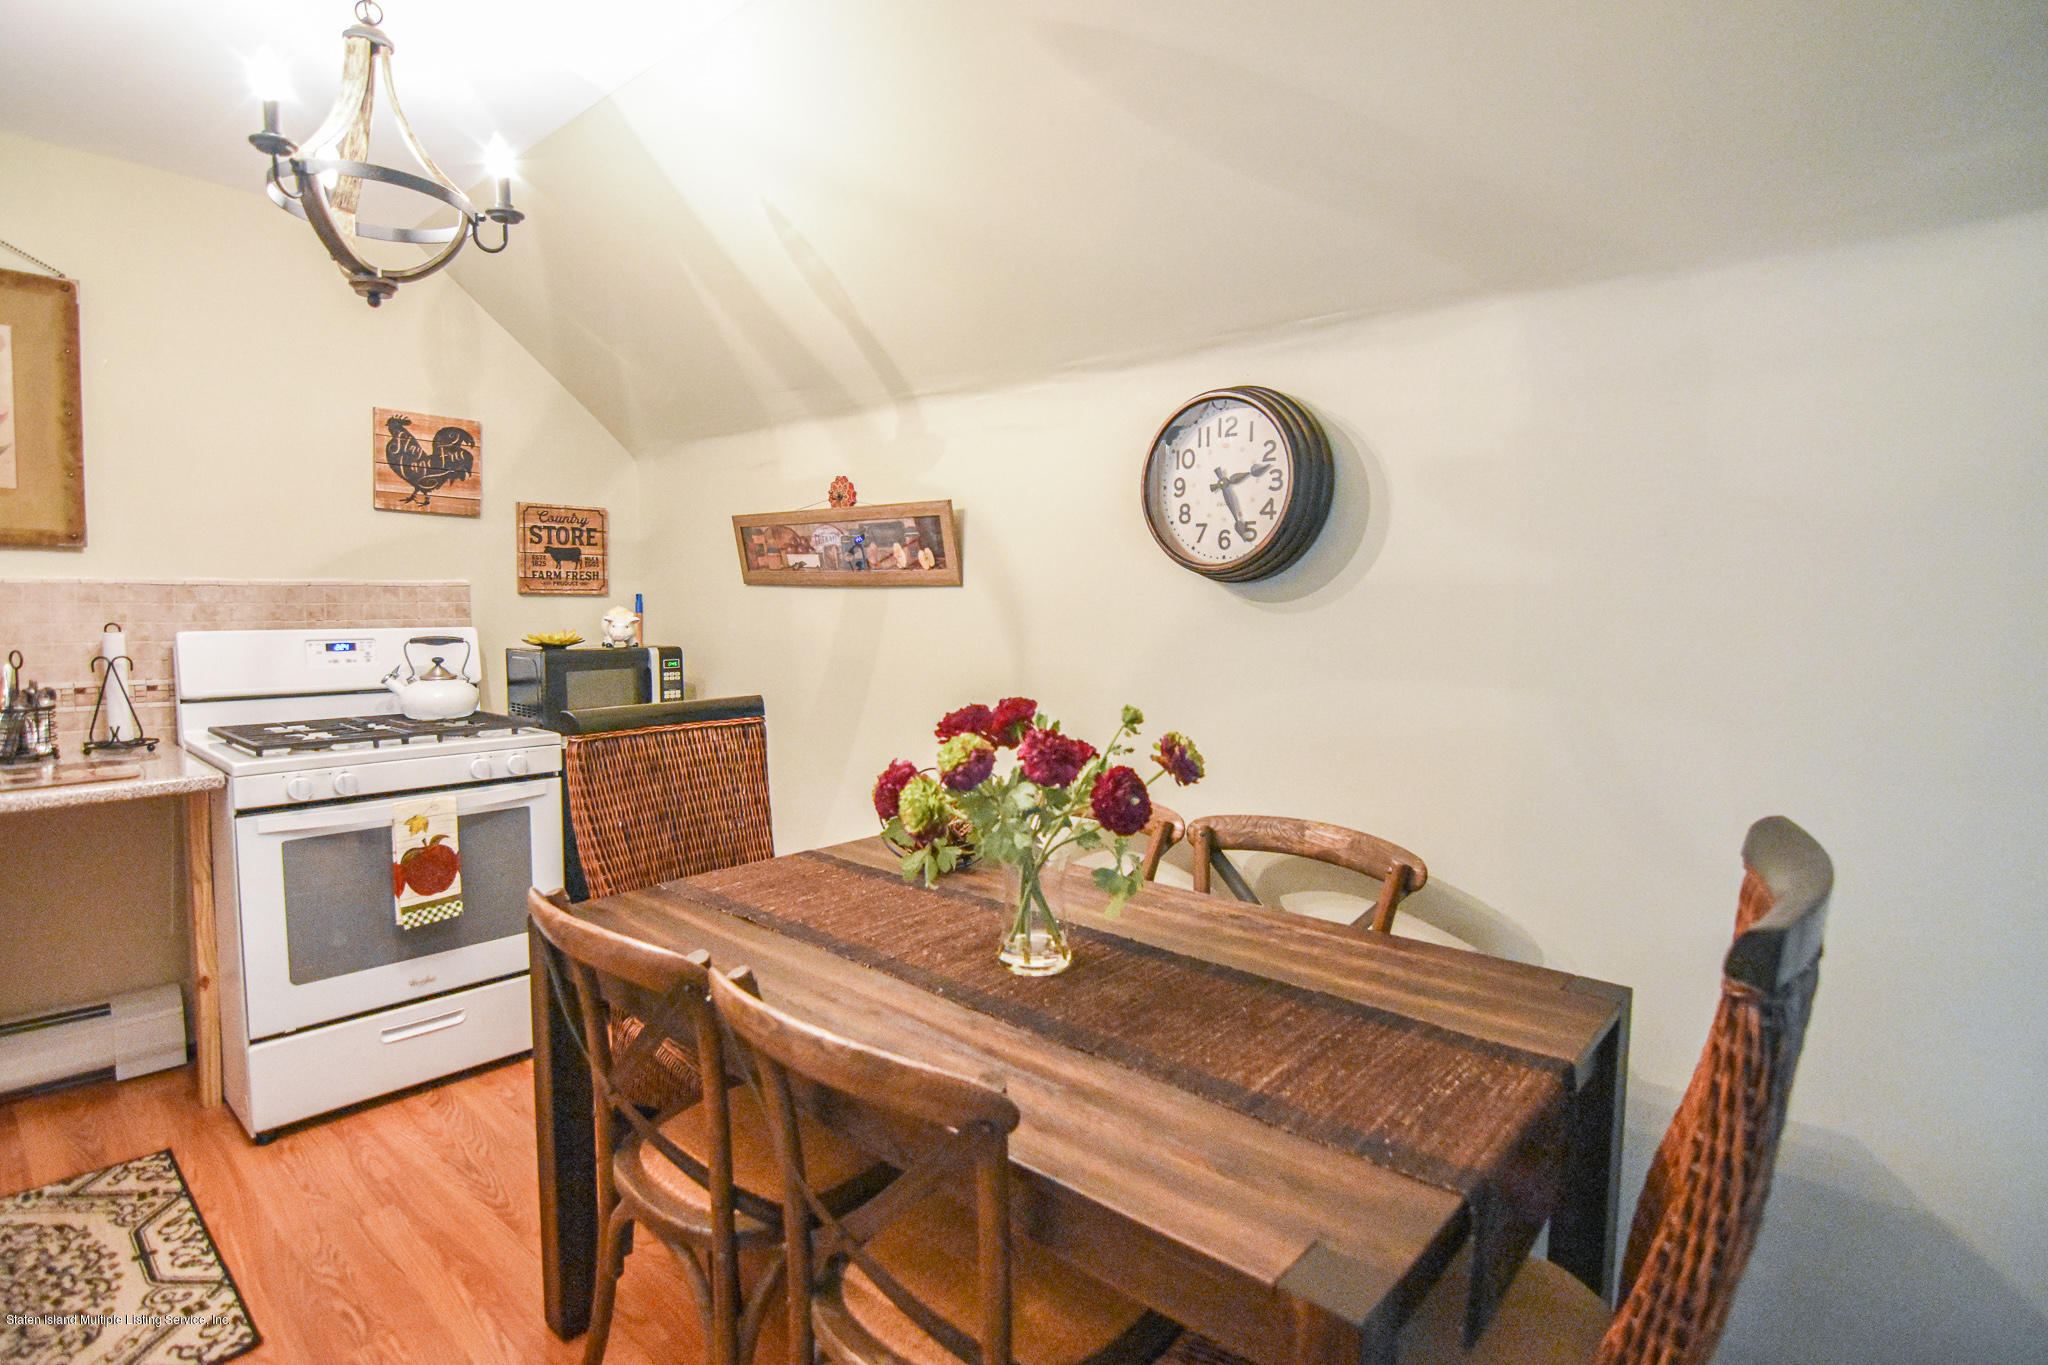 Single Family - Detached 45 Androvette Avenue  Staten Island, NY 10312, MLS-1130190-27